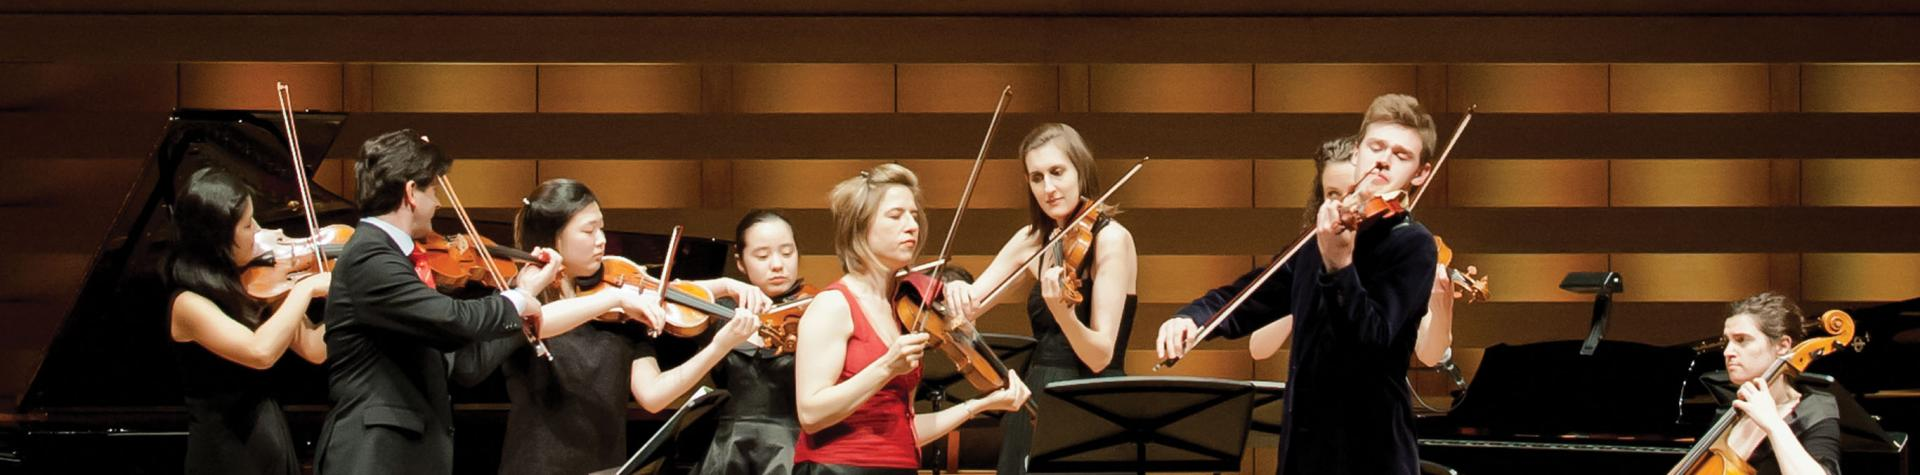 Donate Now - students performing in Koerner Hall